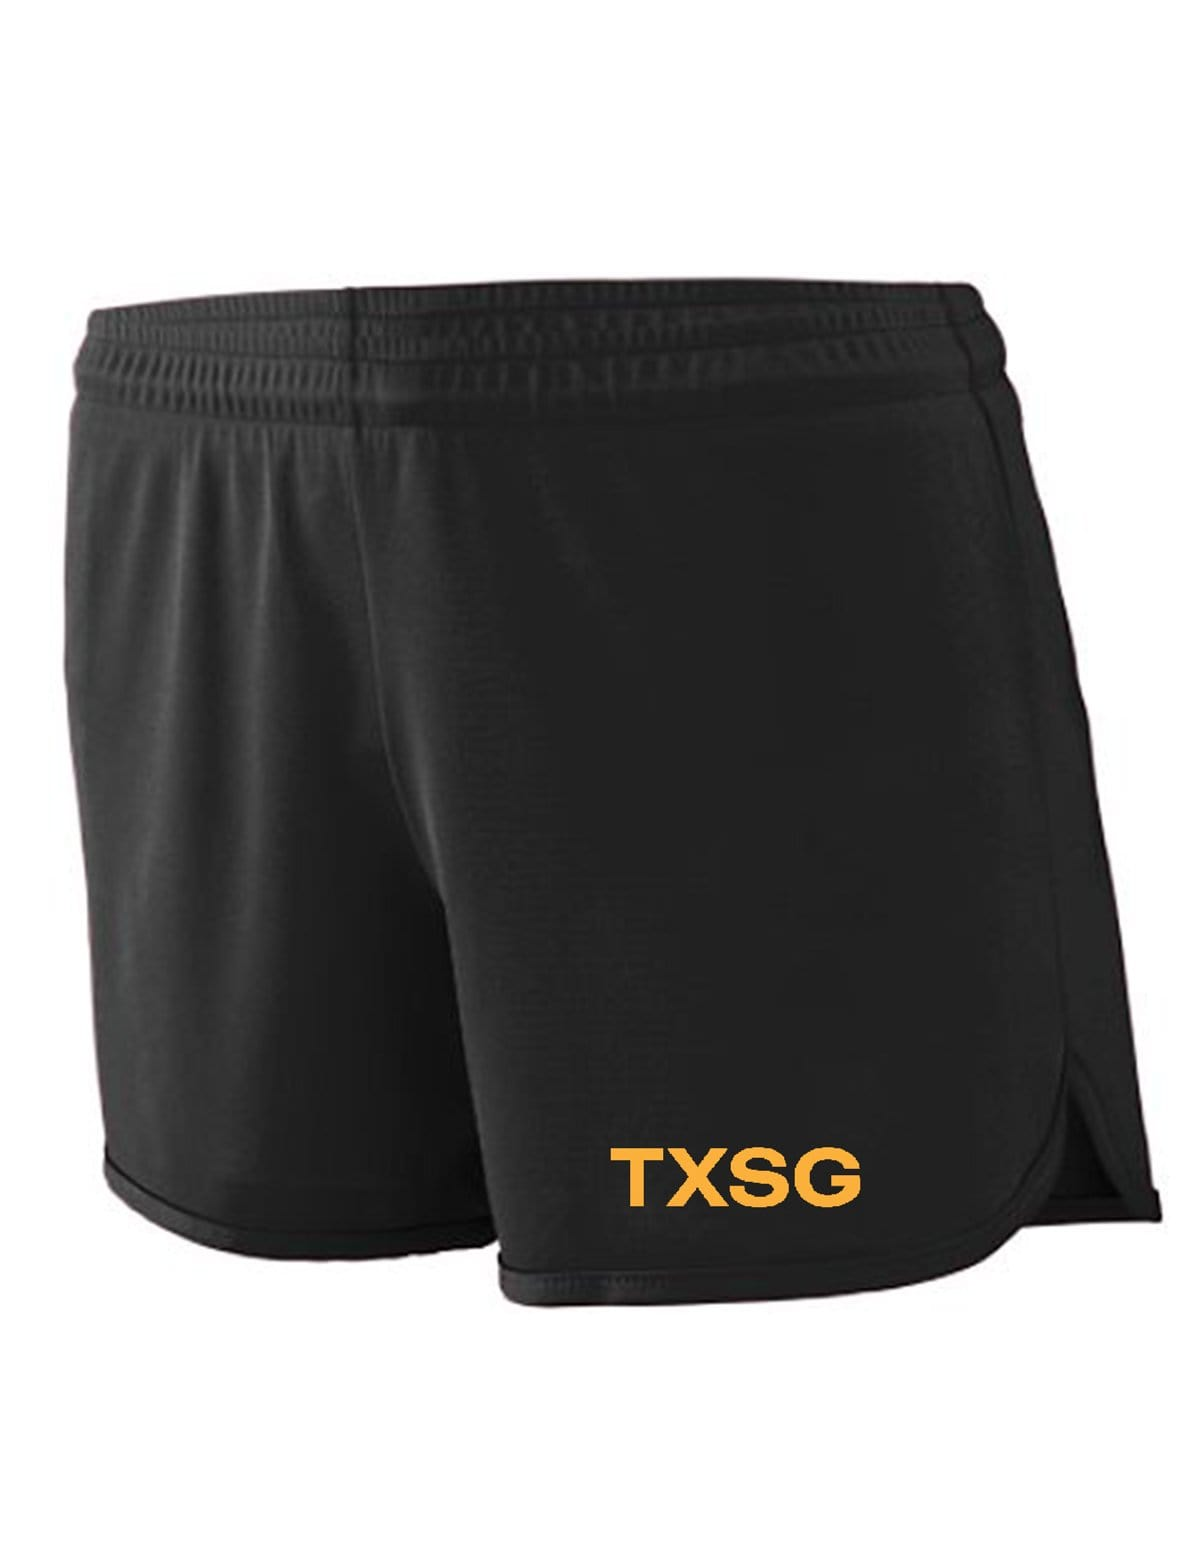 TXSG / Women's Summer PT Bottom